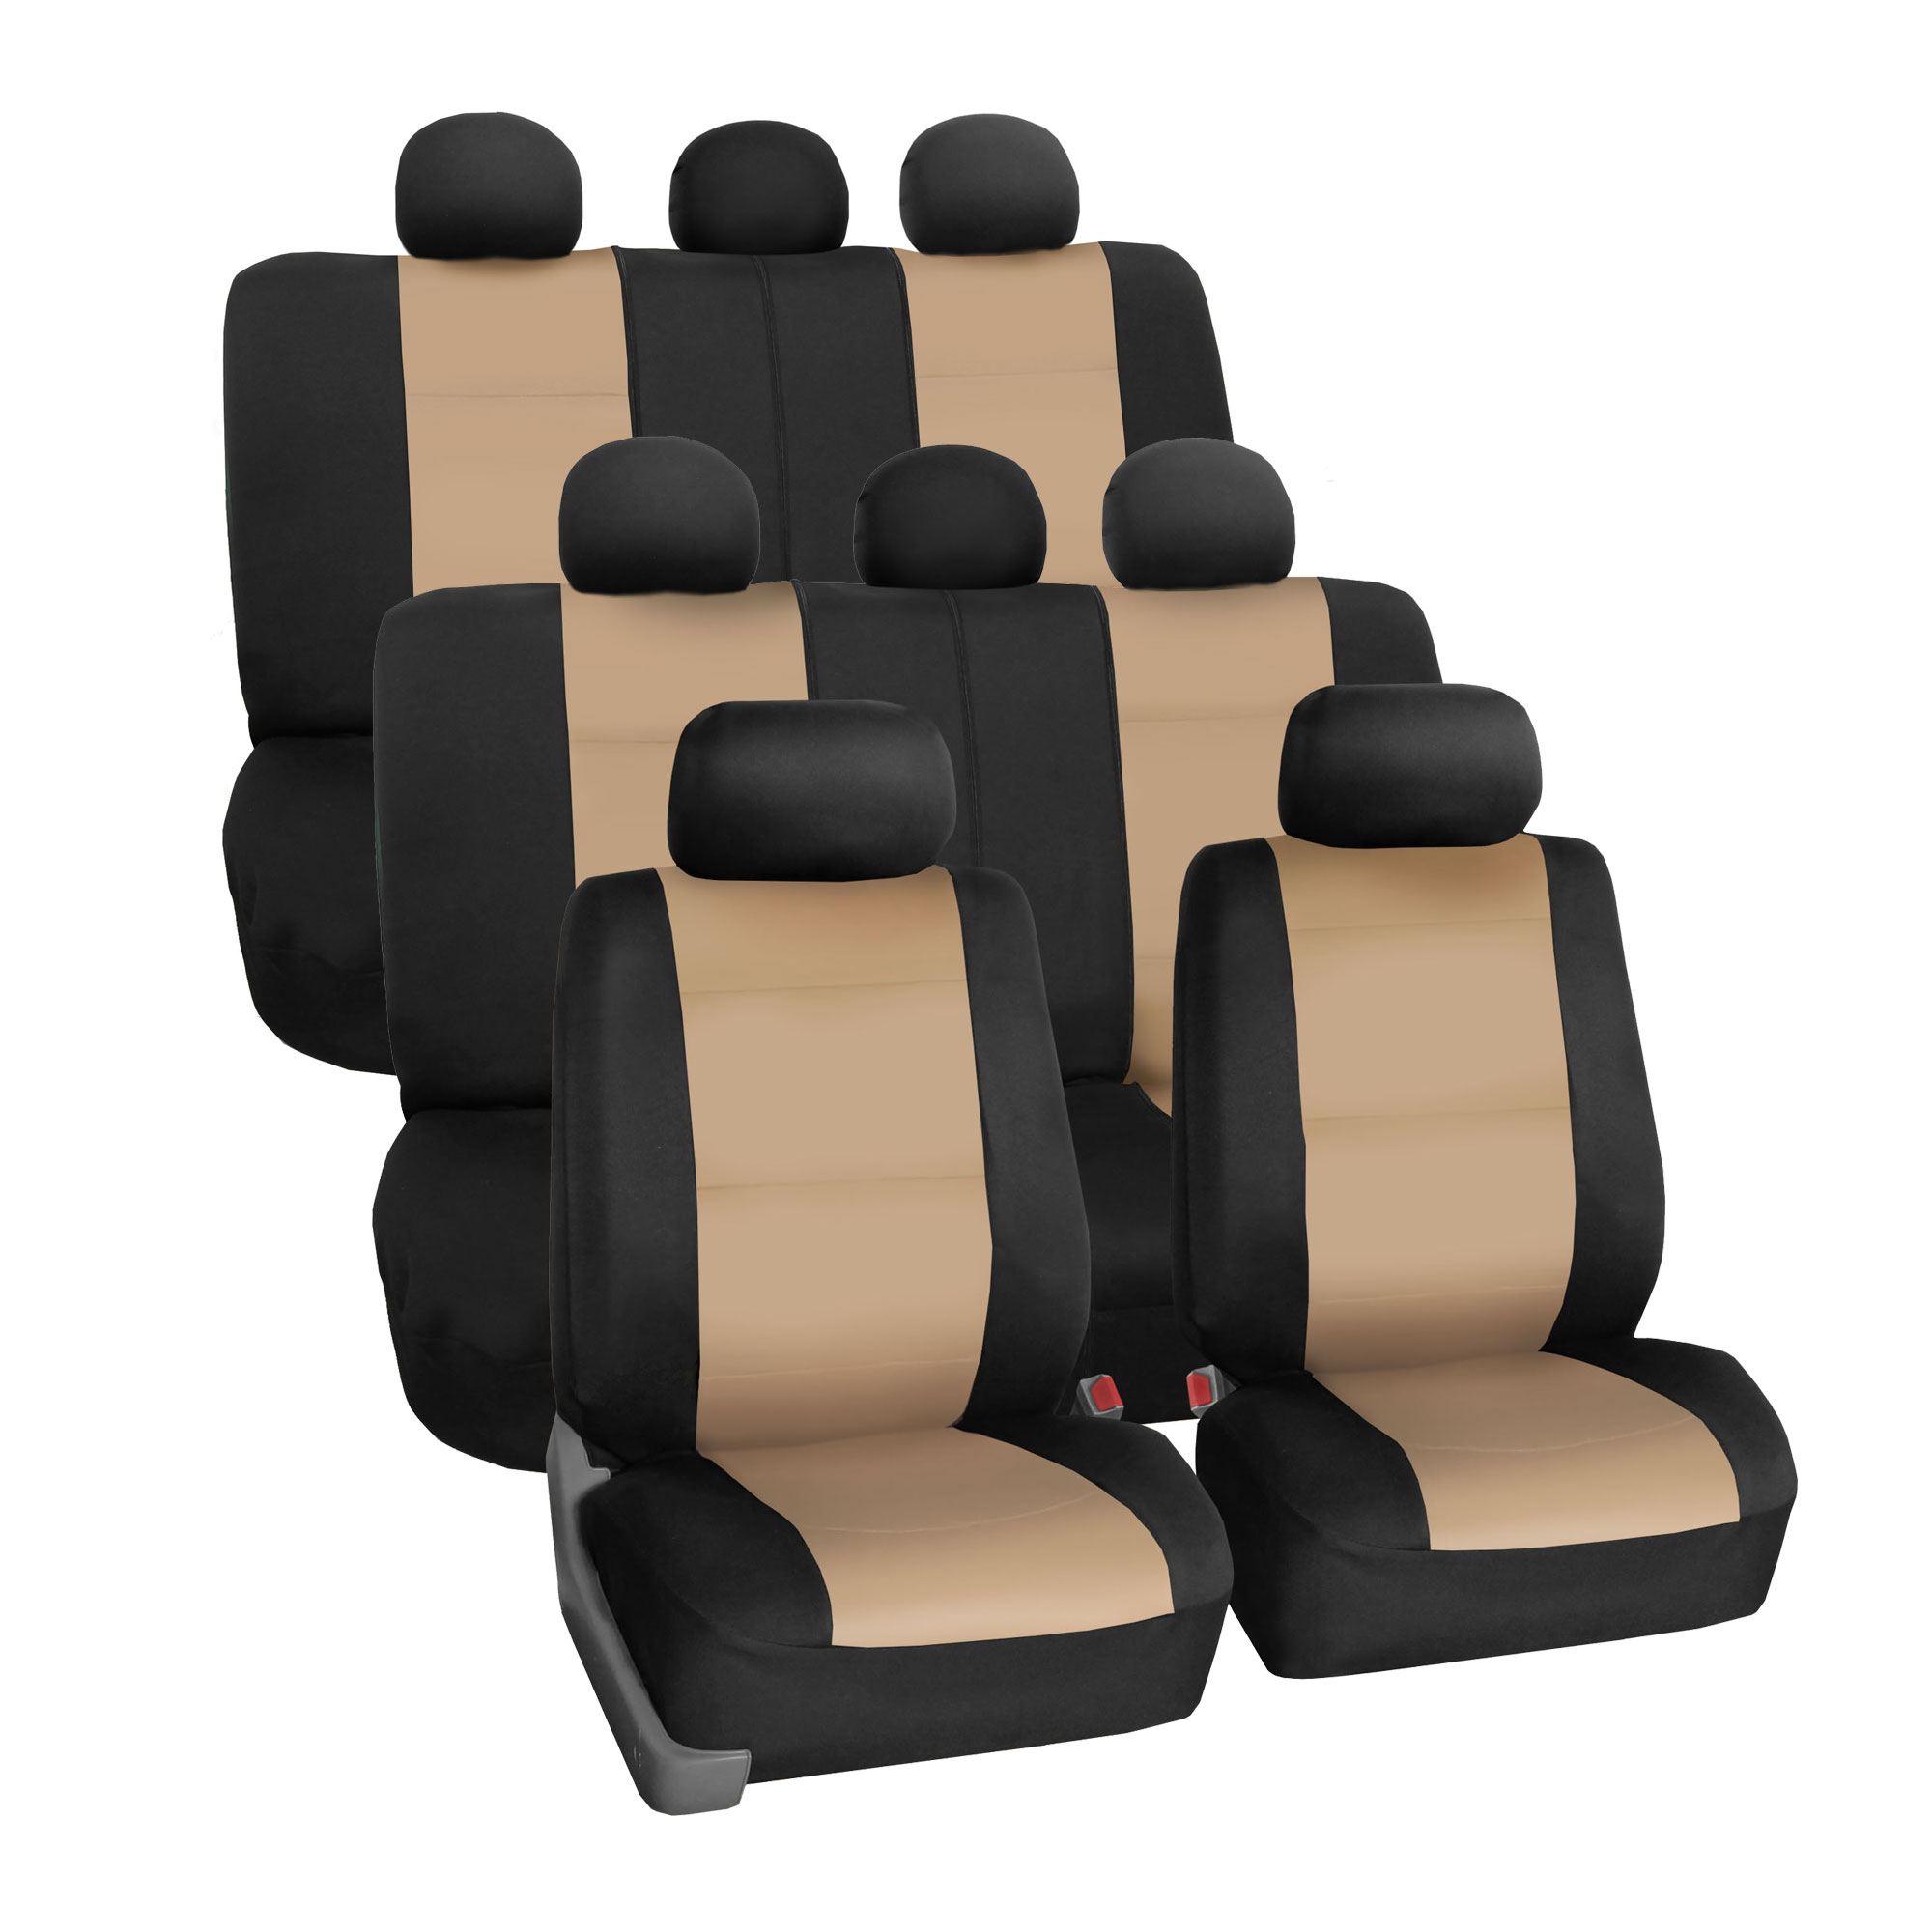 Neoprene 3 Row Car Seat Covers For SUV VAN TRUCK, Airbag Compatible Split Bench 8 Seaters, Beige Black